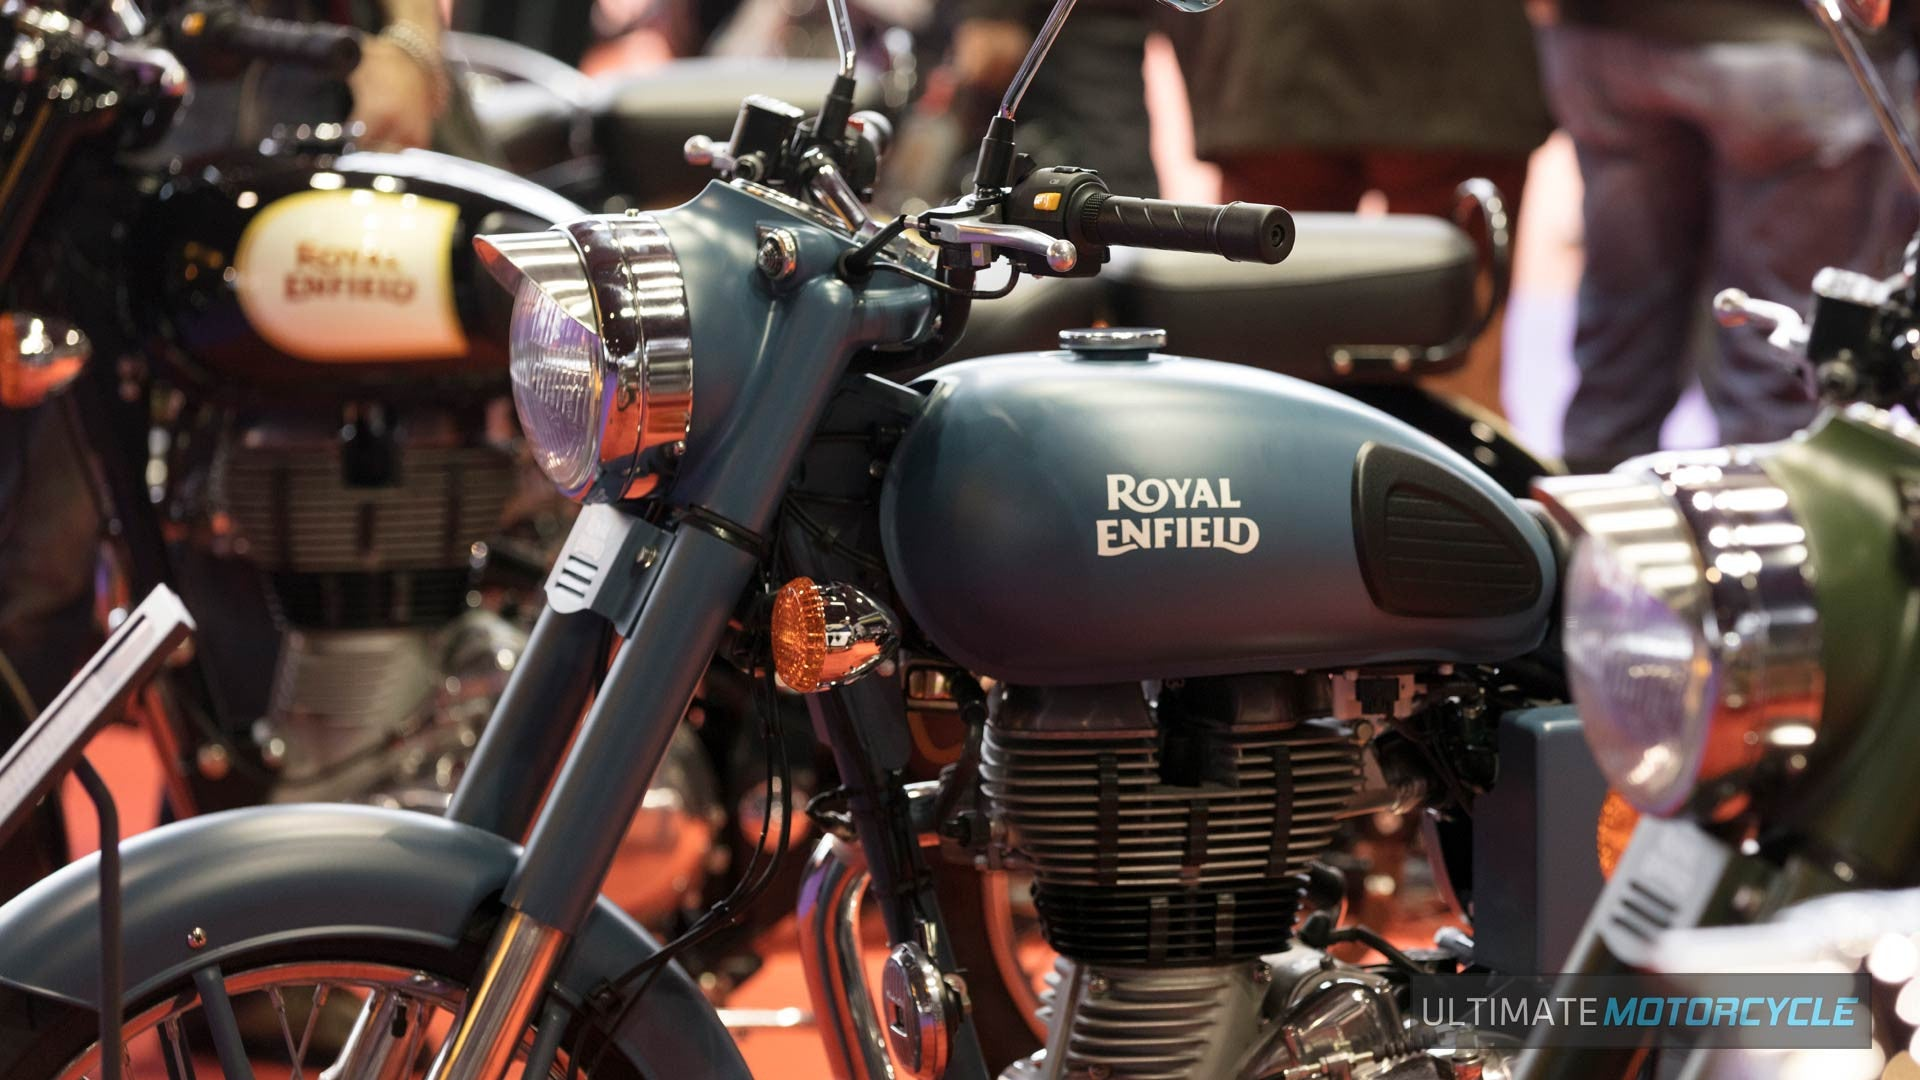 Royal Enfield Motorcycle Accessories